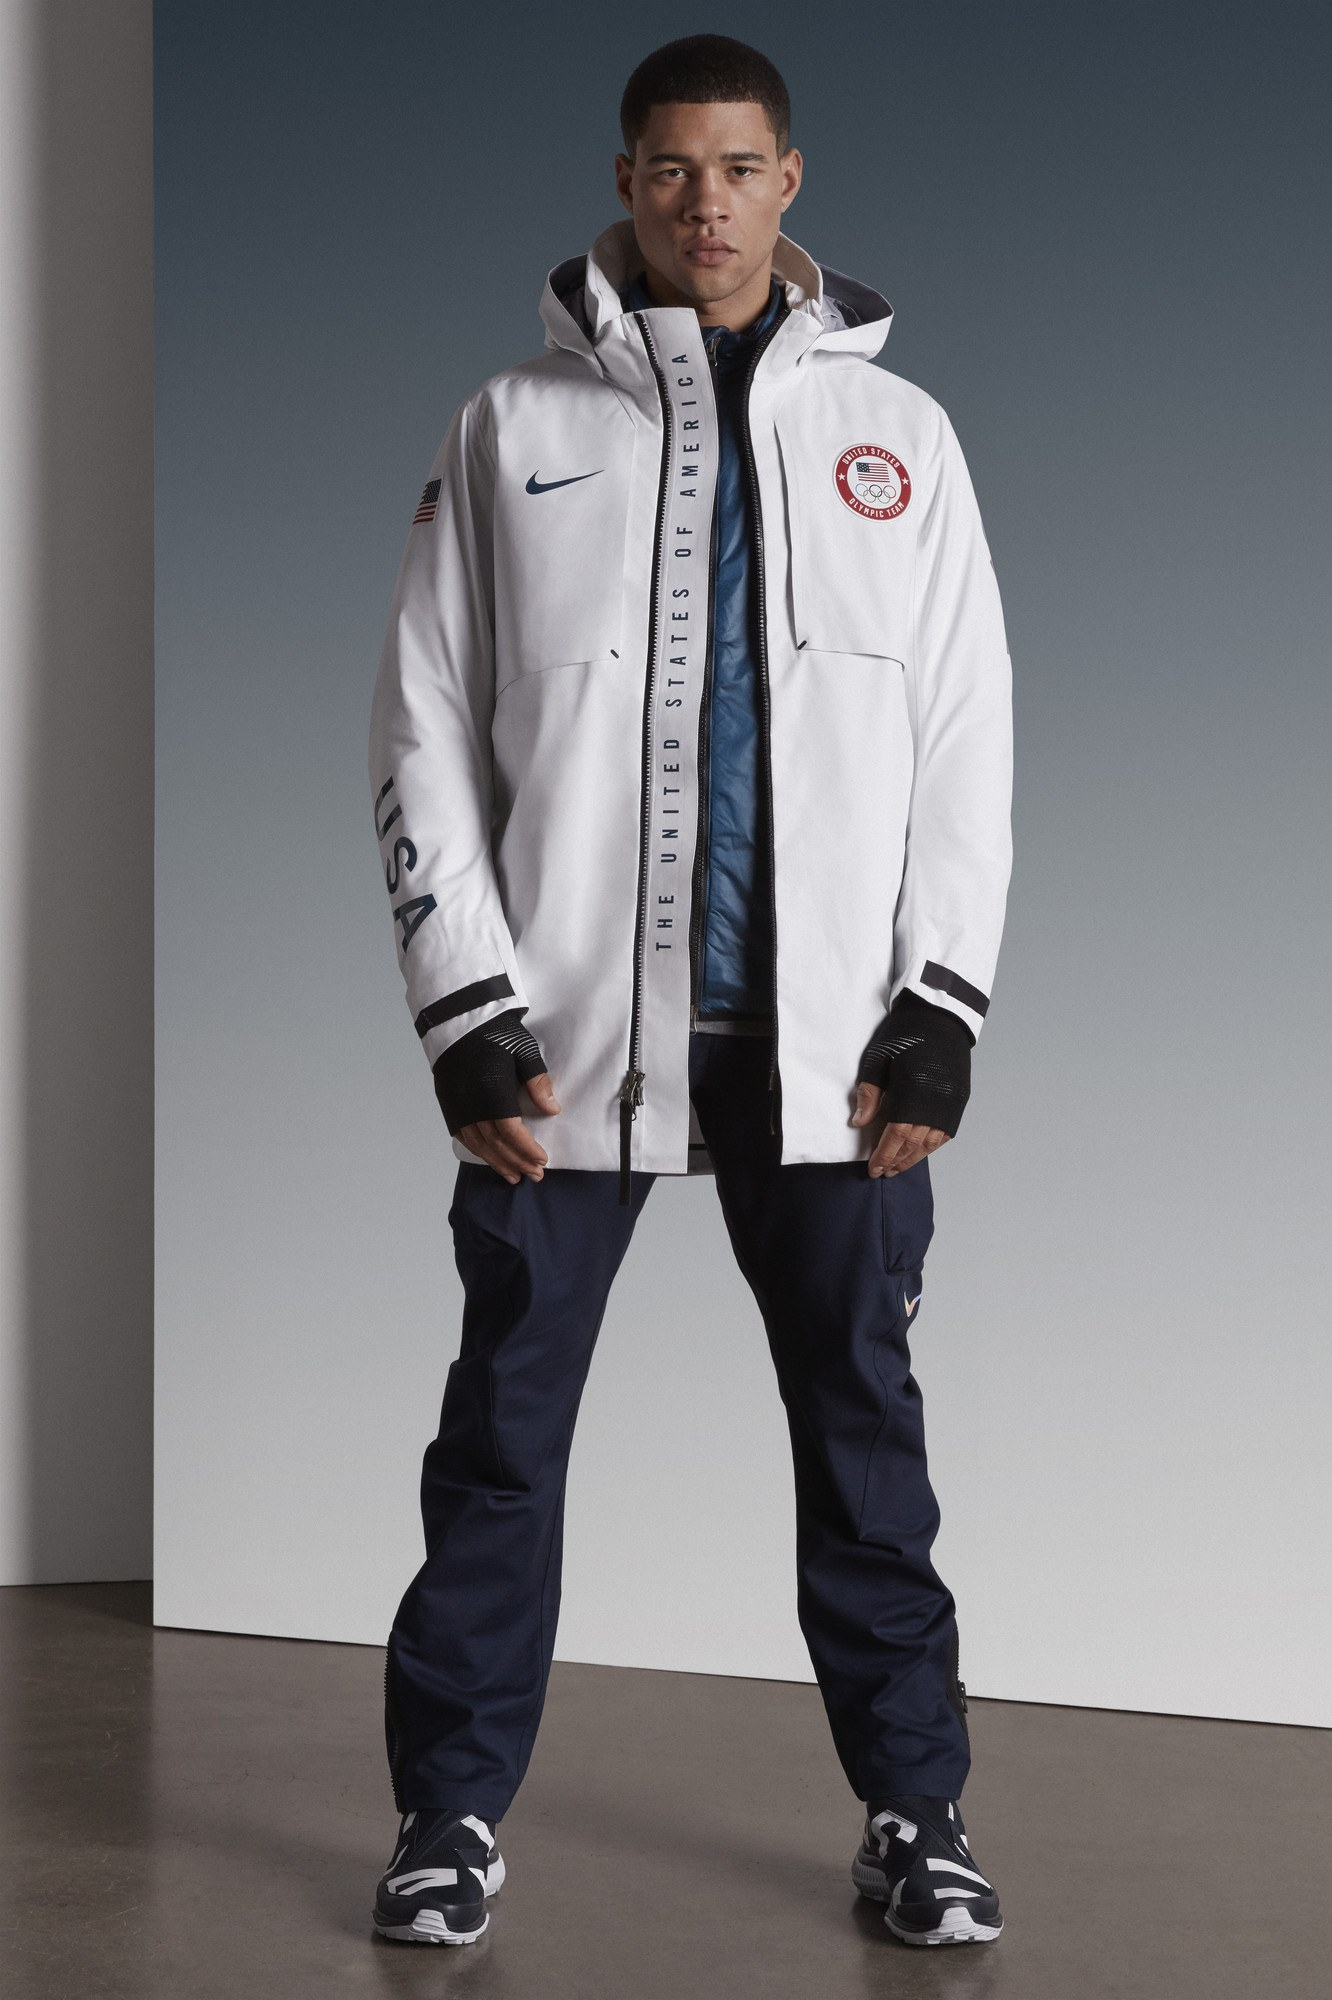 Men's Olympic medal stand outfit by Nike